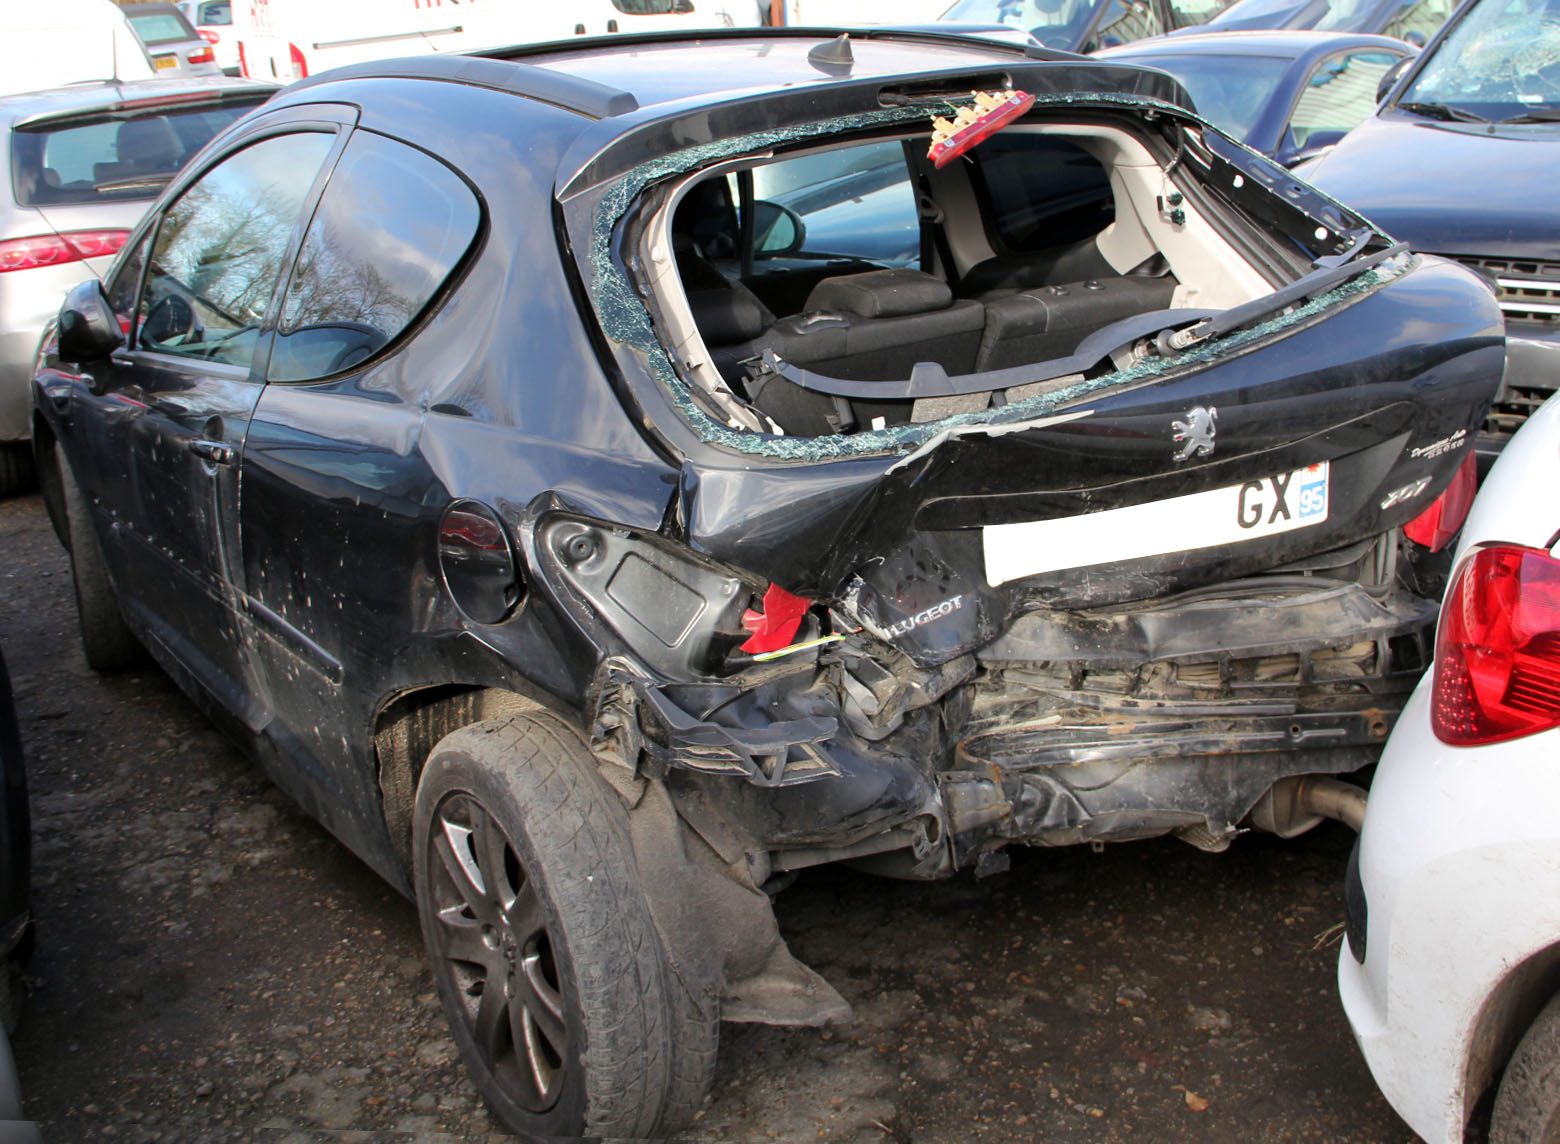 PEUGEOT 207 1.6 HDI 16V accidented